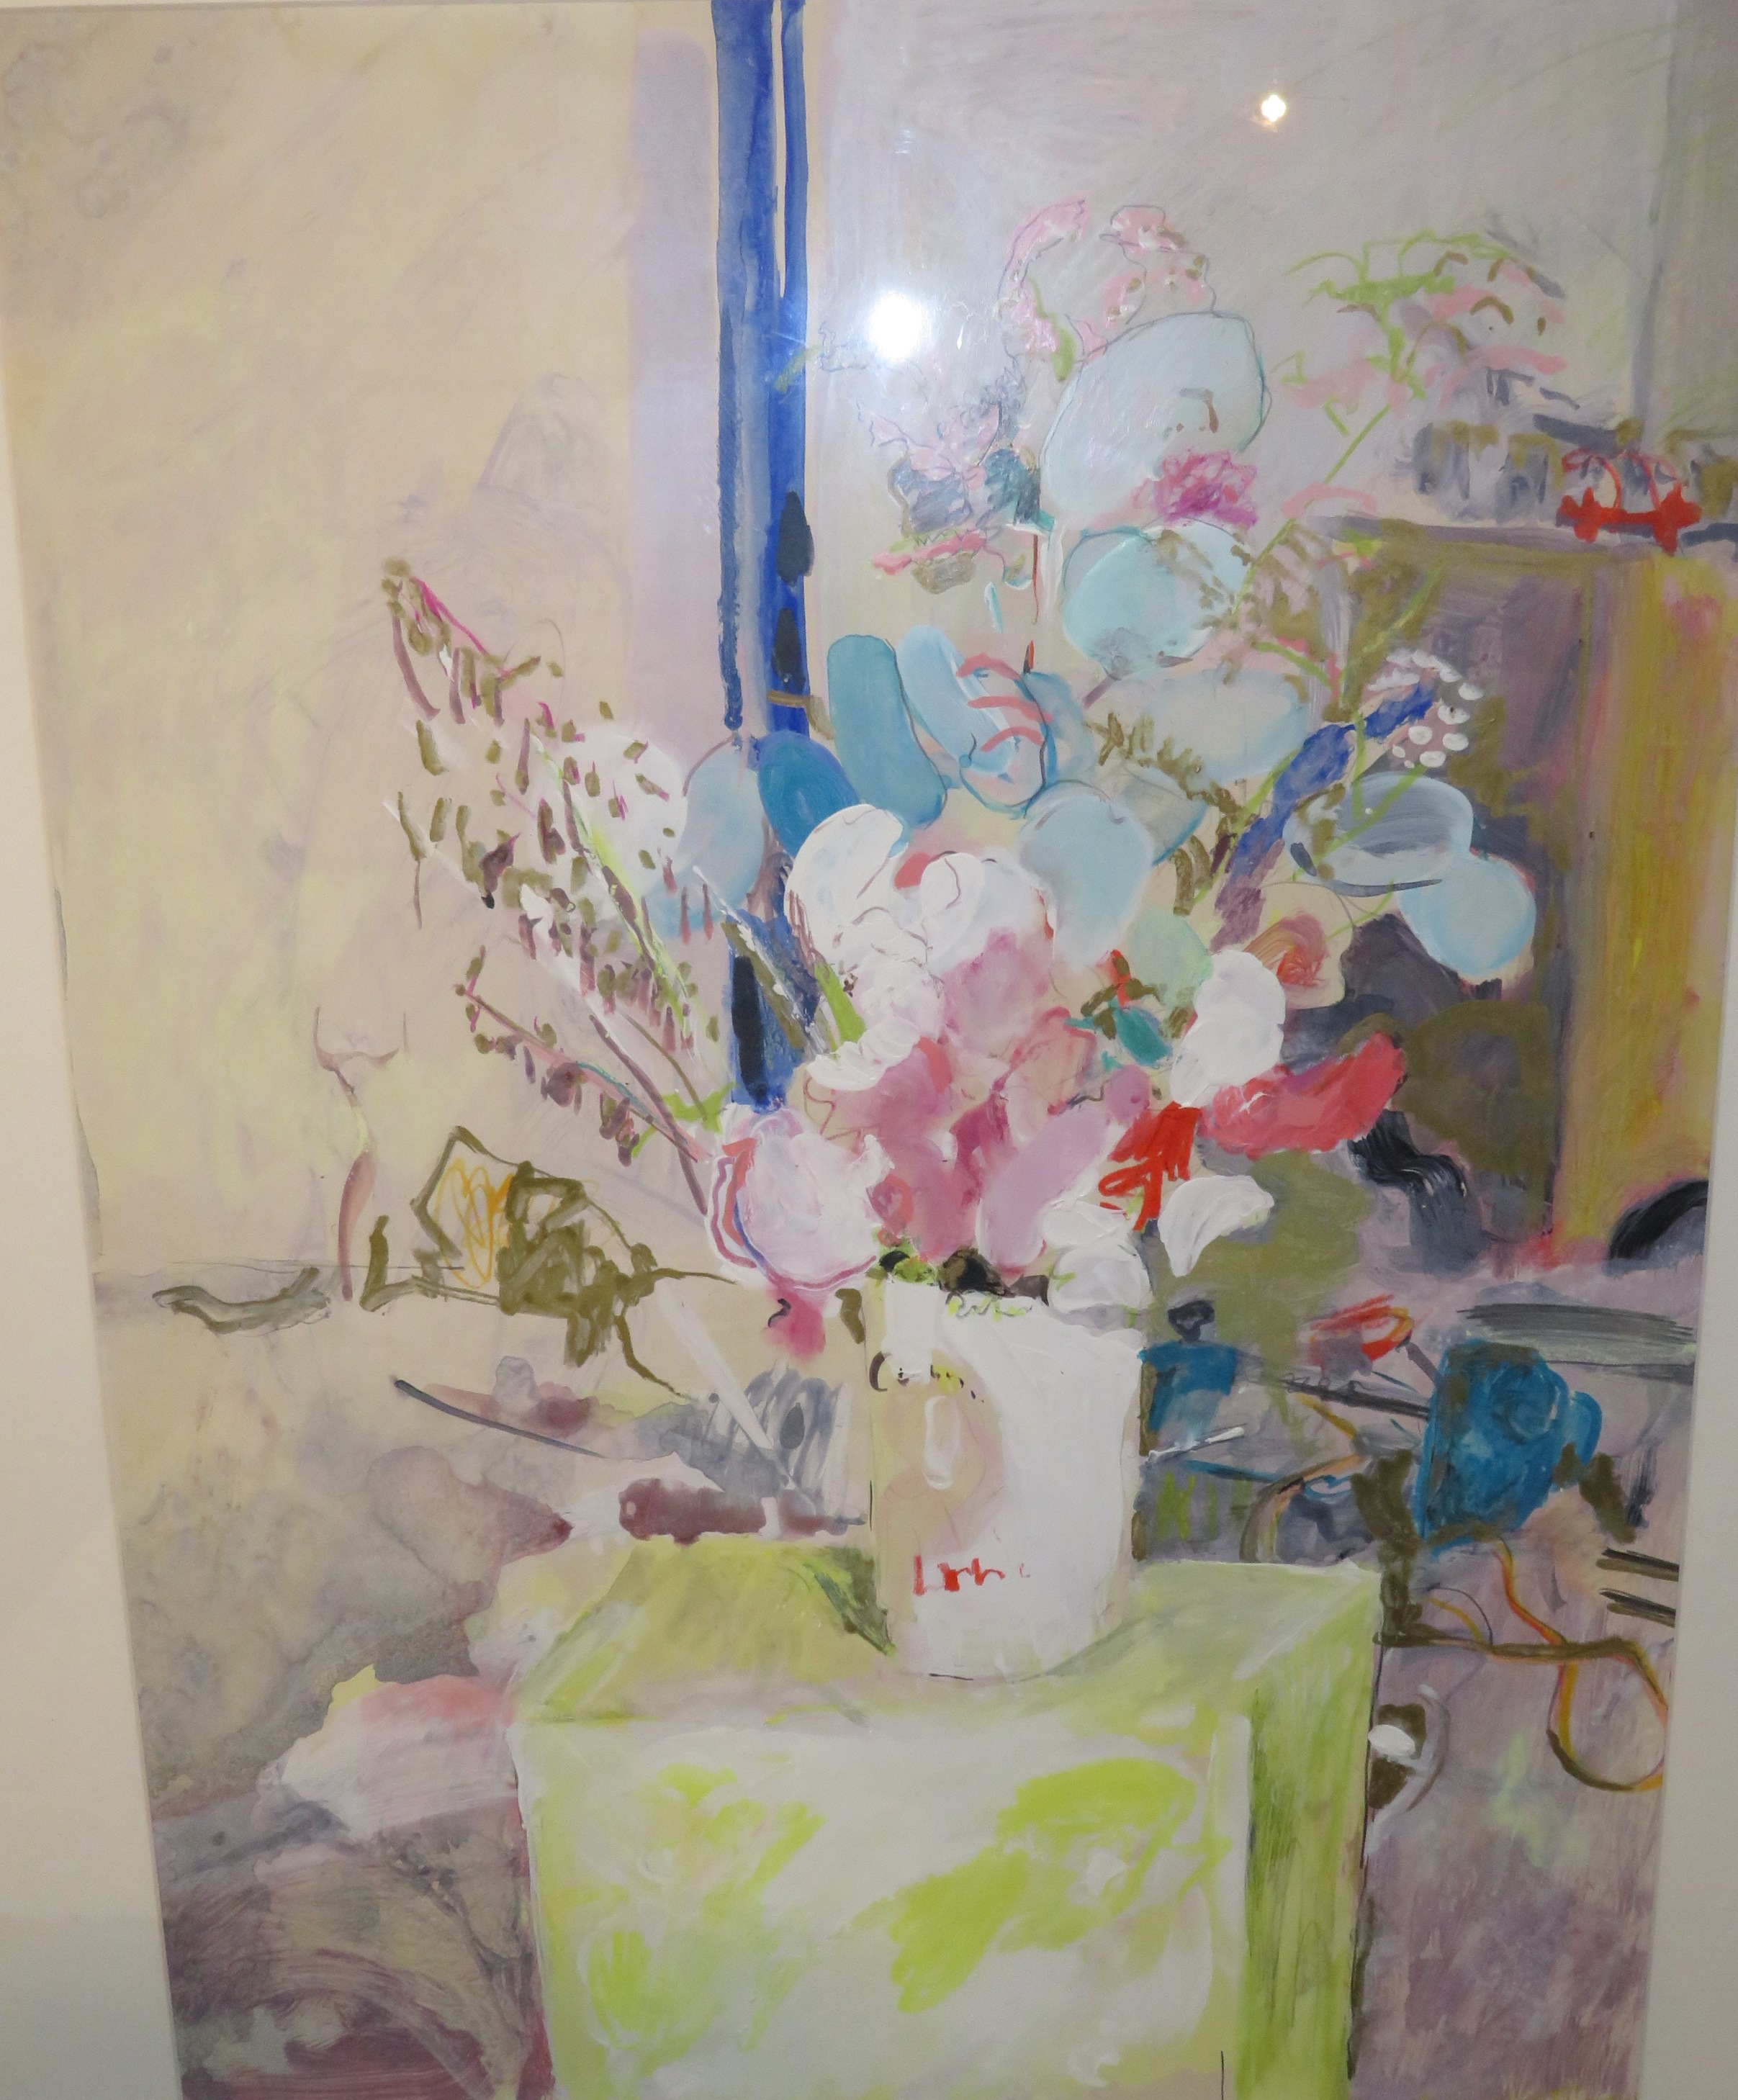 Lot 28 - Still life with vase of flowers, mixed media, signed Jacquie Turner lower right, (59cm x 44cm) F&G